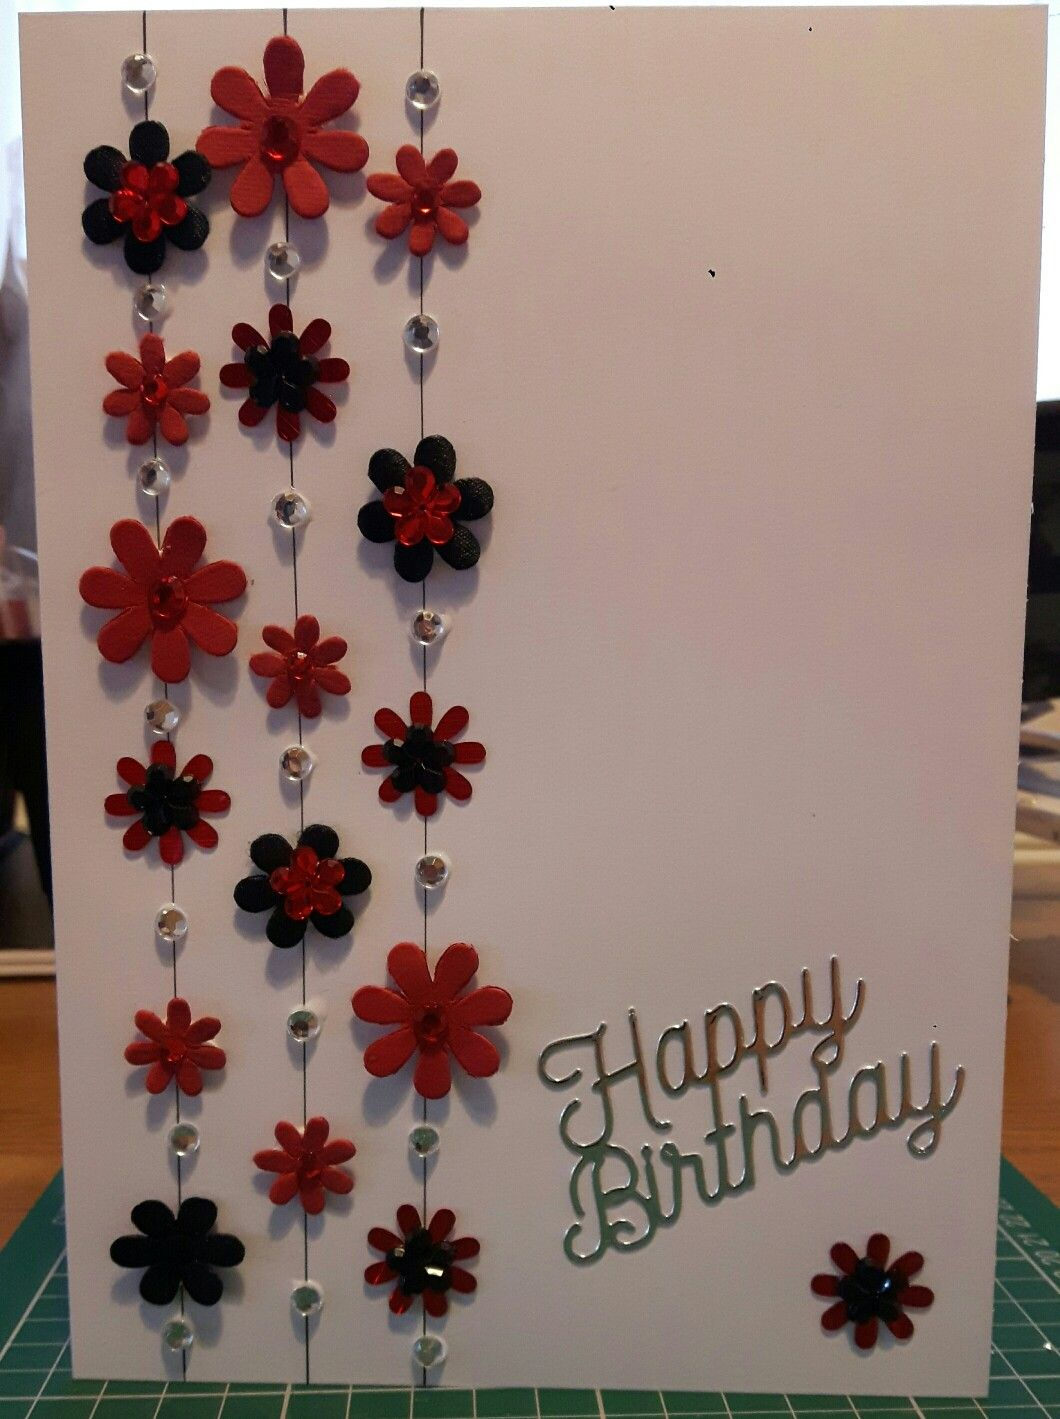 Quick card with flowers and beads cards birthday pinterest quick card with flowers and beads izmirmasajfo